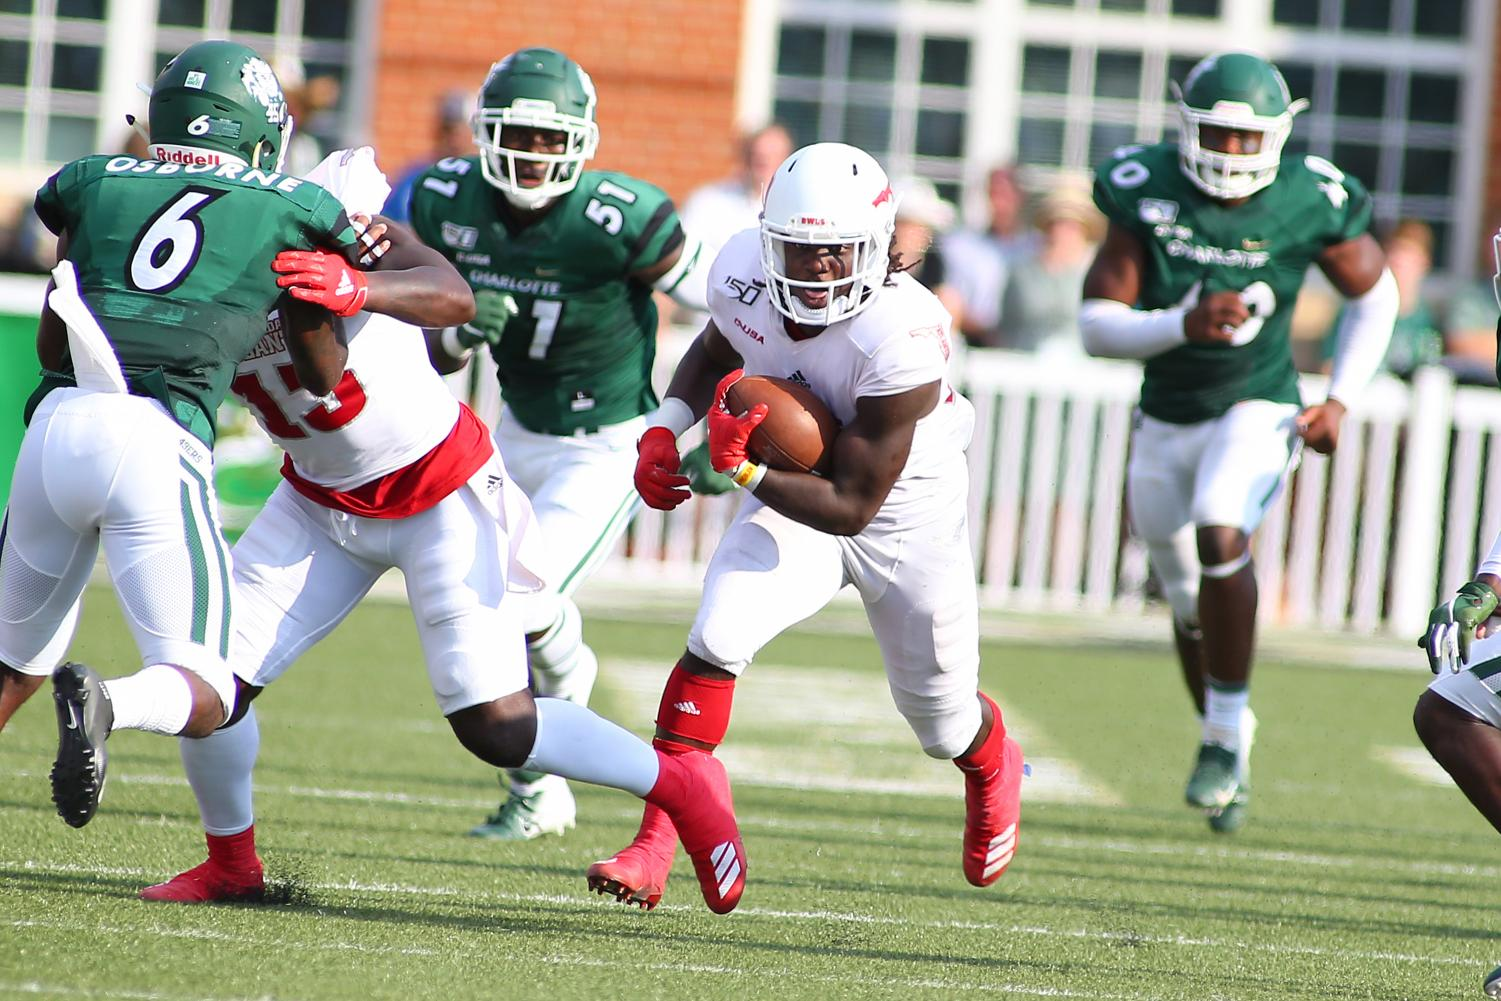 Running back Malcolm Davidson ran the ball effectively against Charlotte with 83 rushing yards and two touchdowns. Photo courtesy of FAU Athletics.